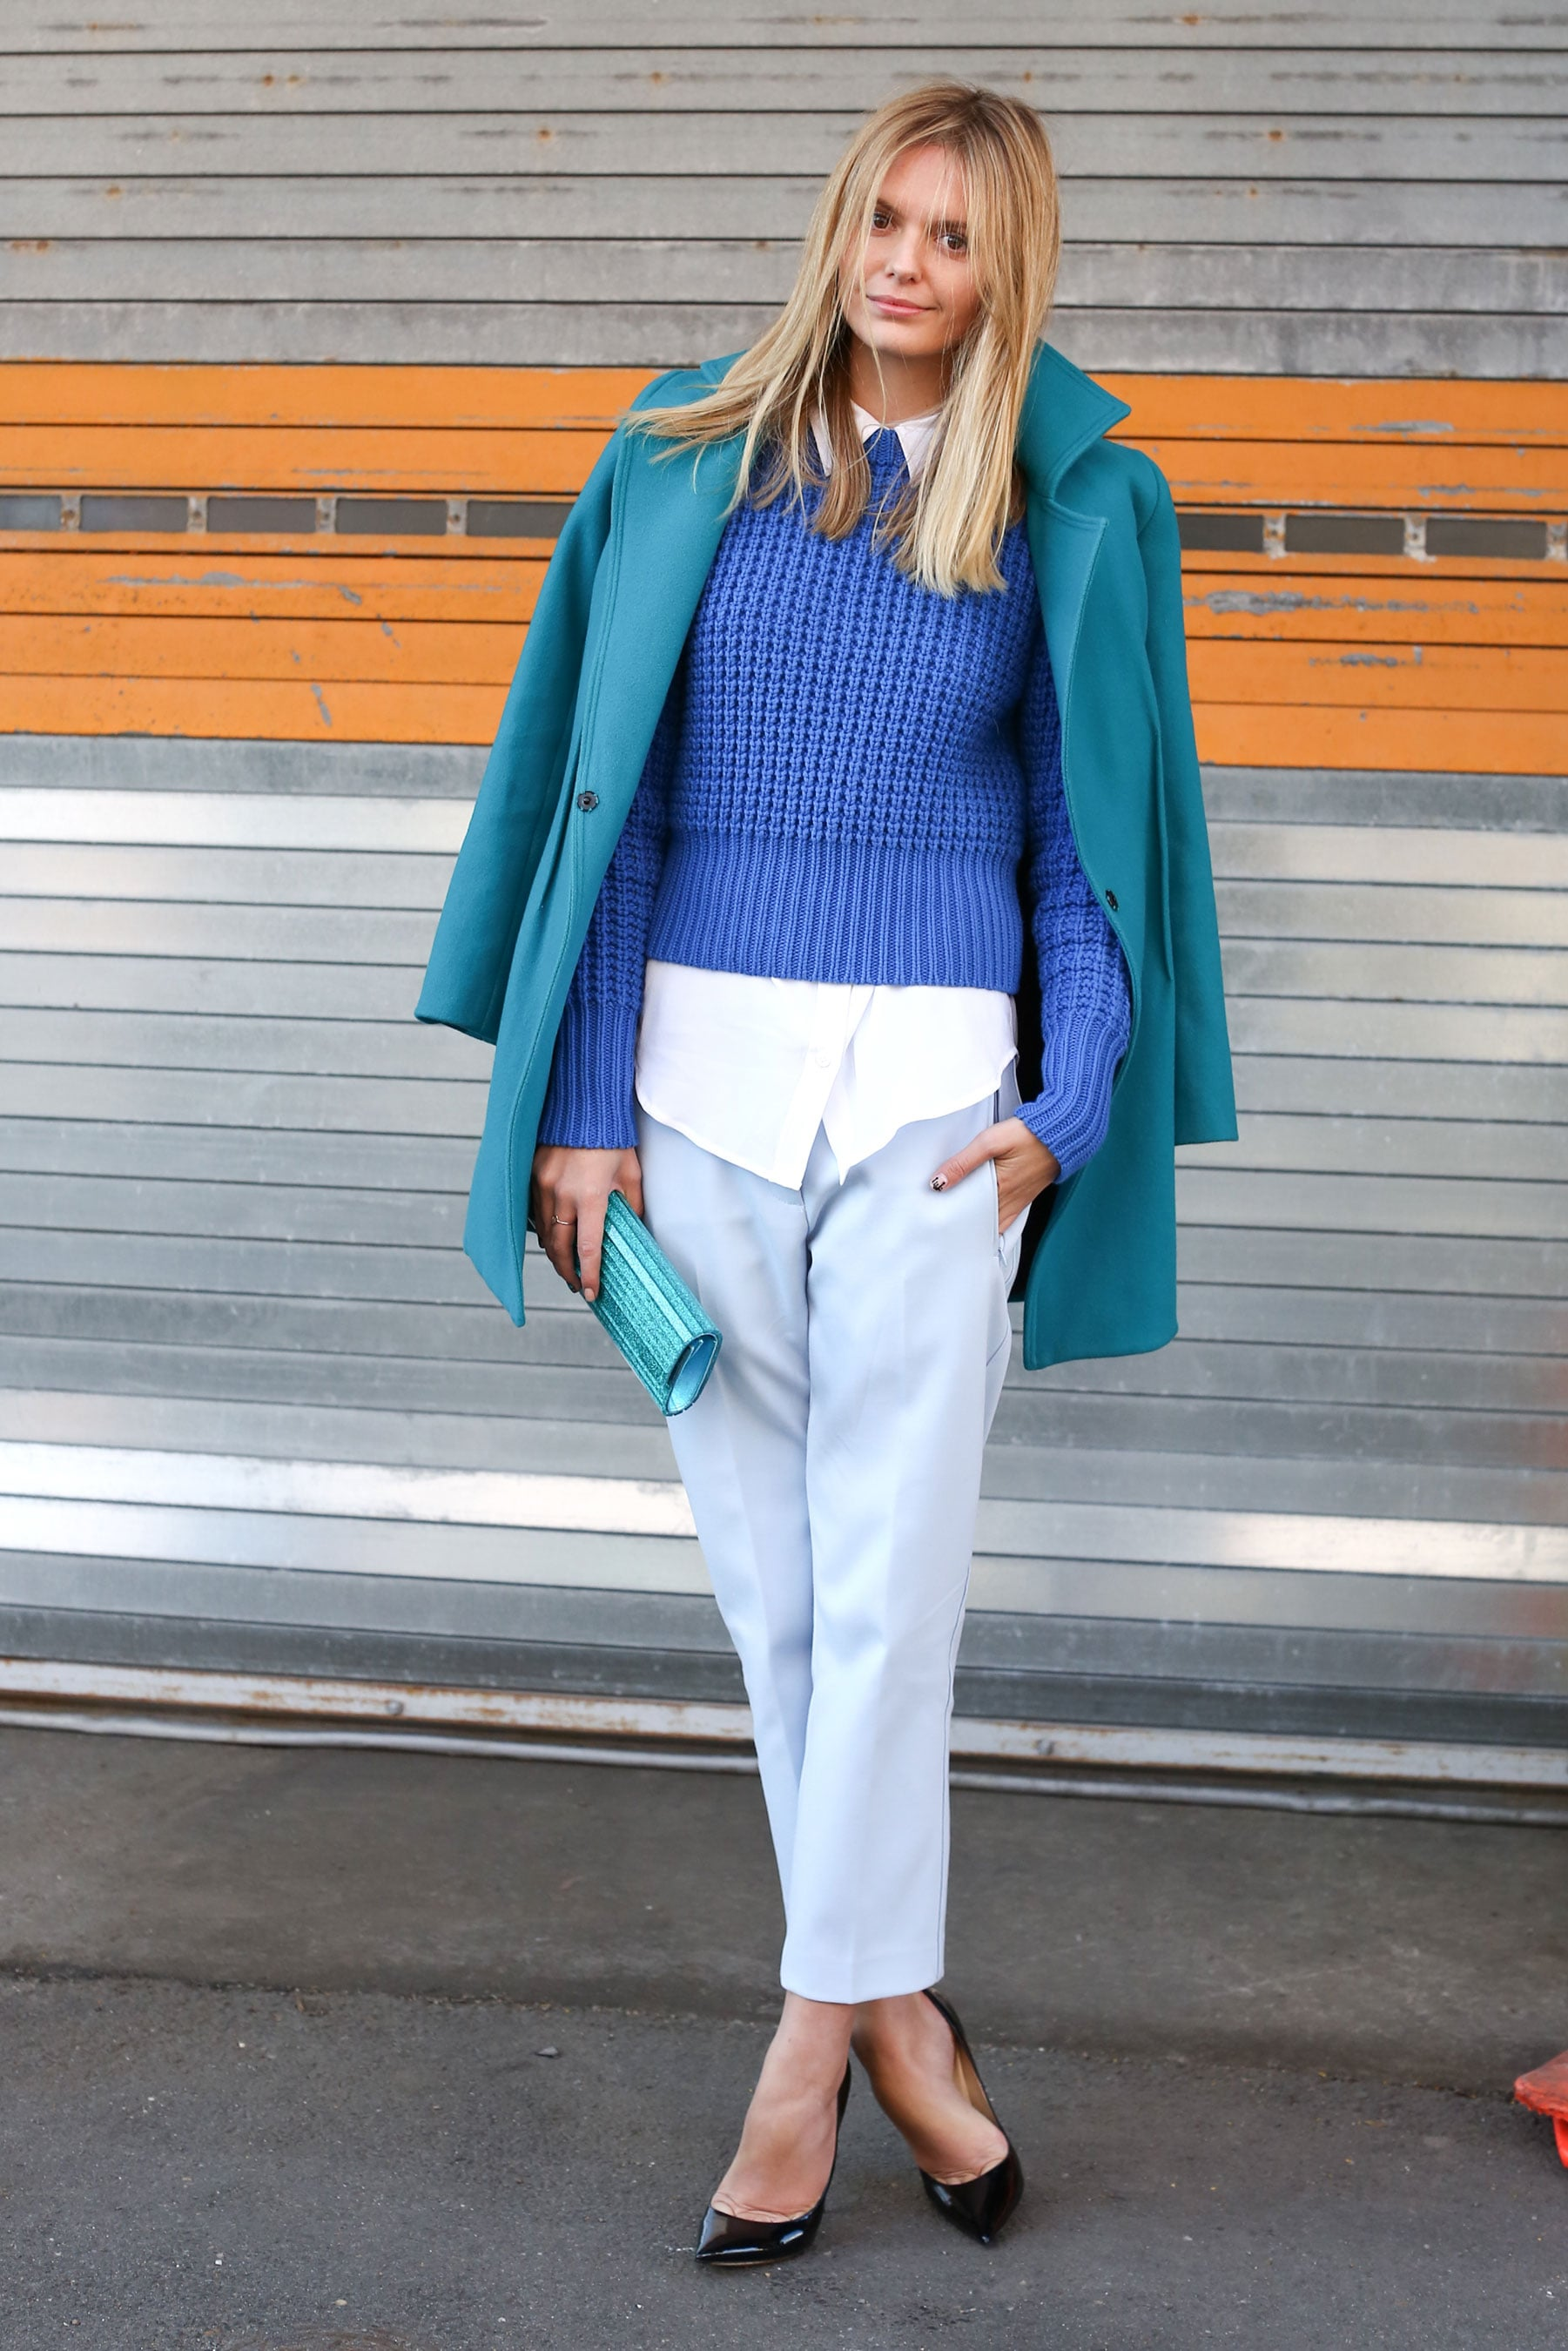 Experiment with color and layering to pep up the basic button-down and pants combo.